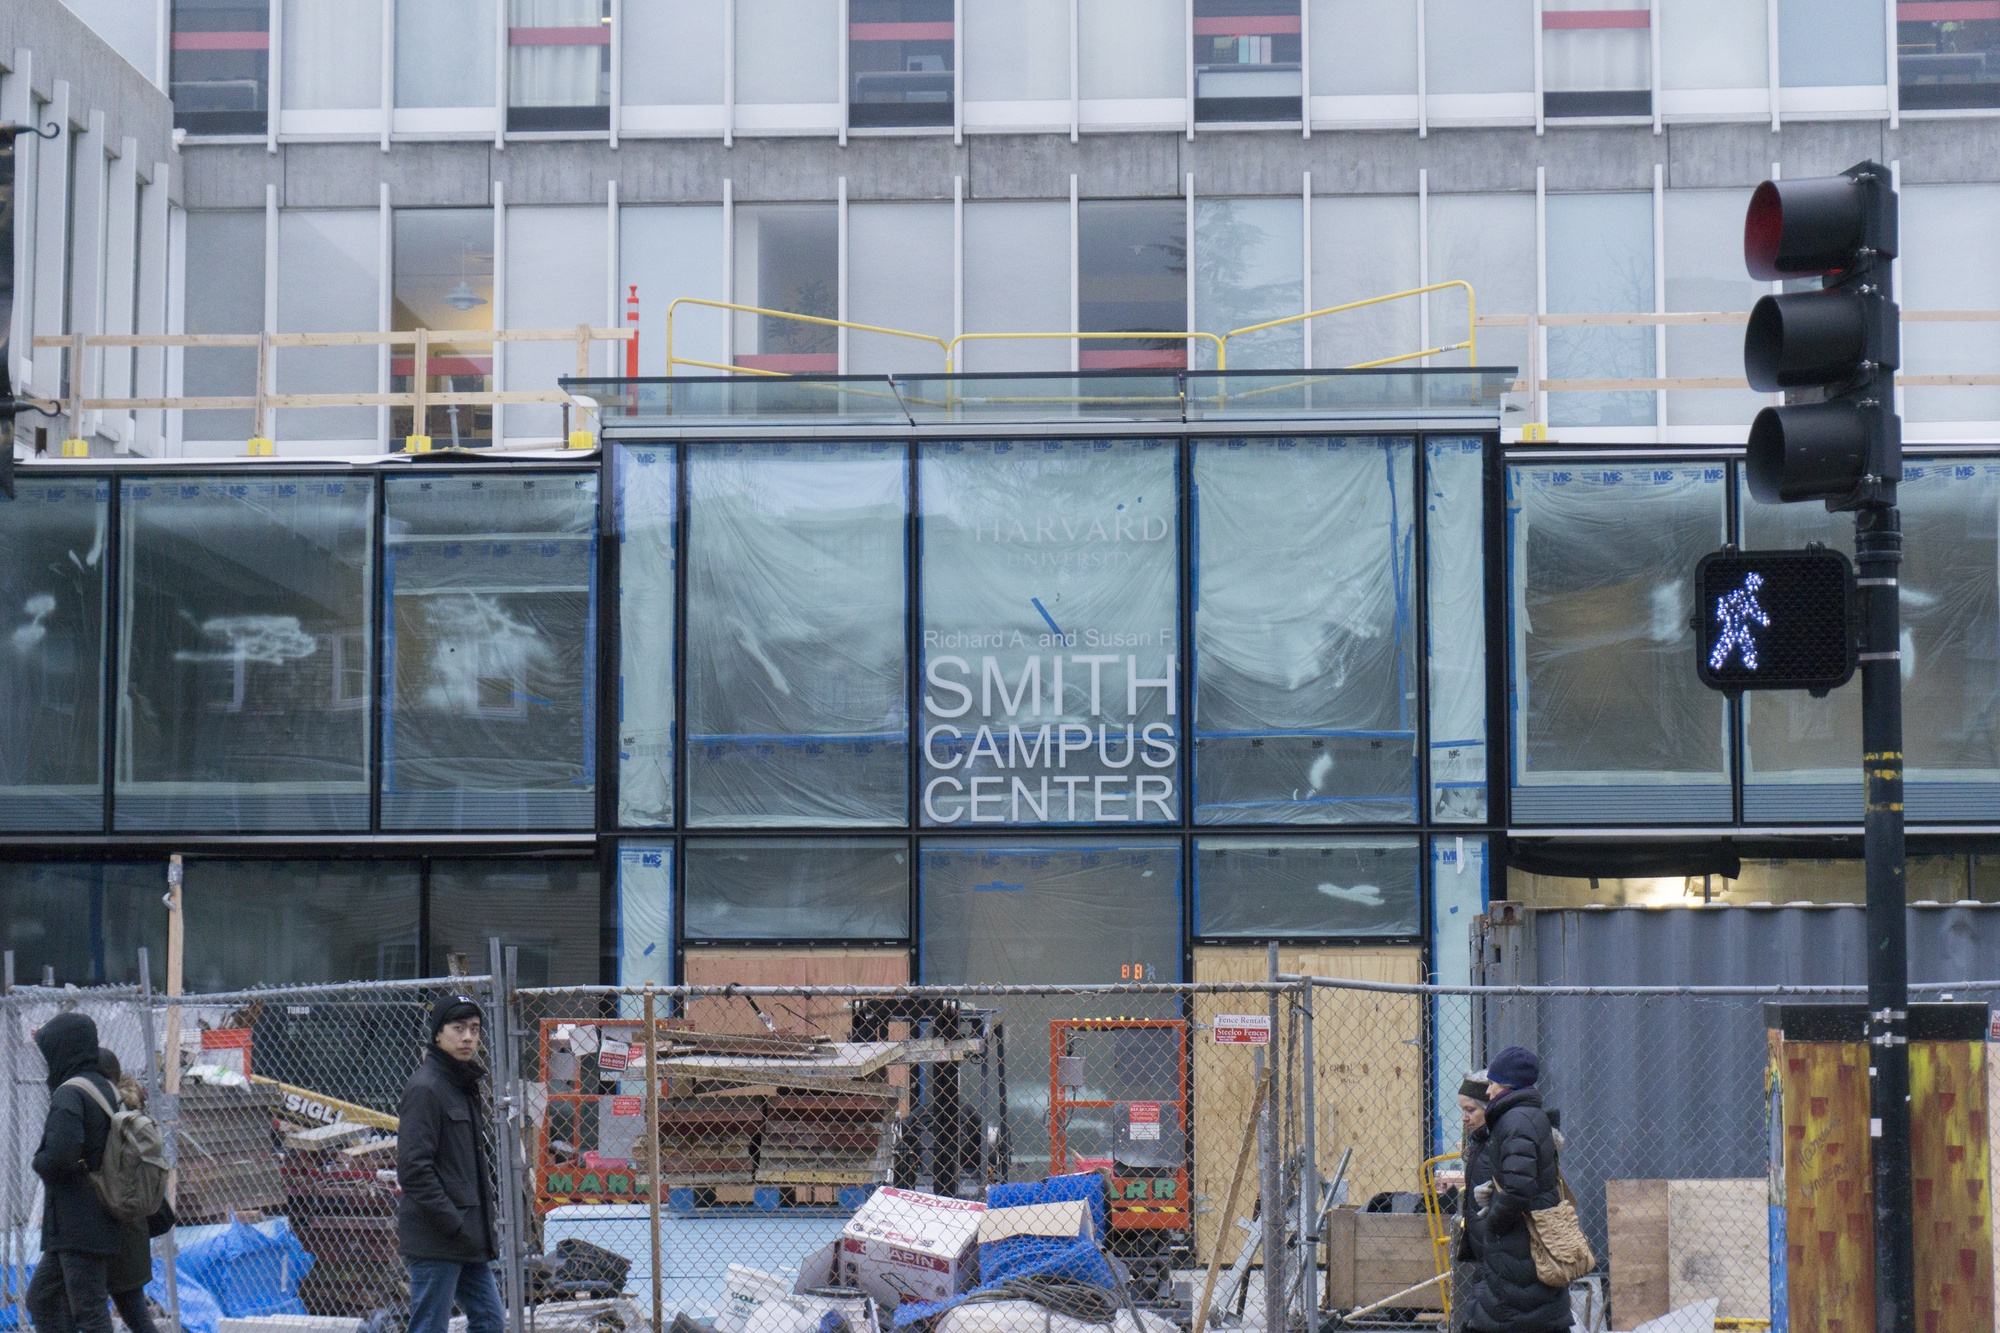 Harvard began renovations of the Smith Campus Center in April 2016 after receiving a donation from Richard A. Smith and Susan F. Smith.